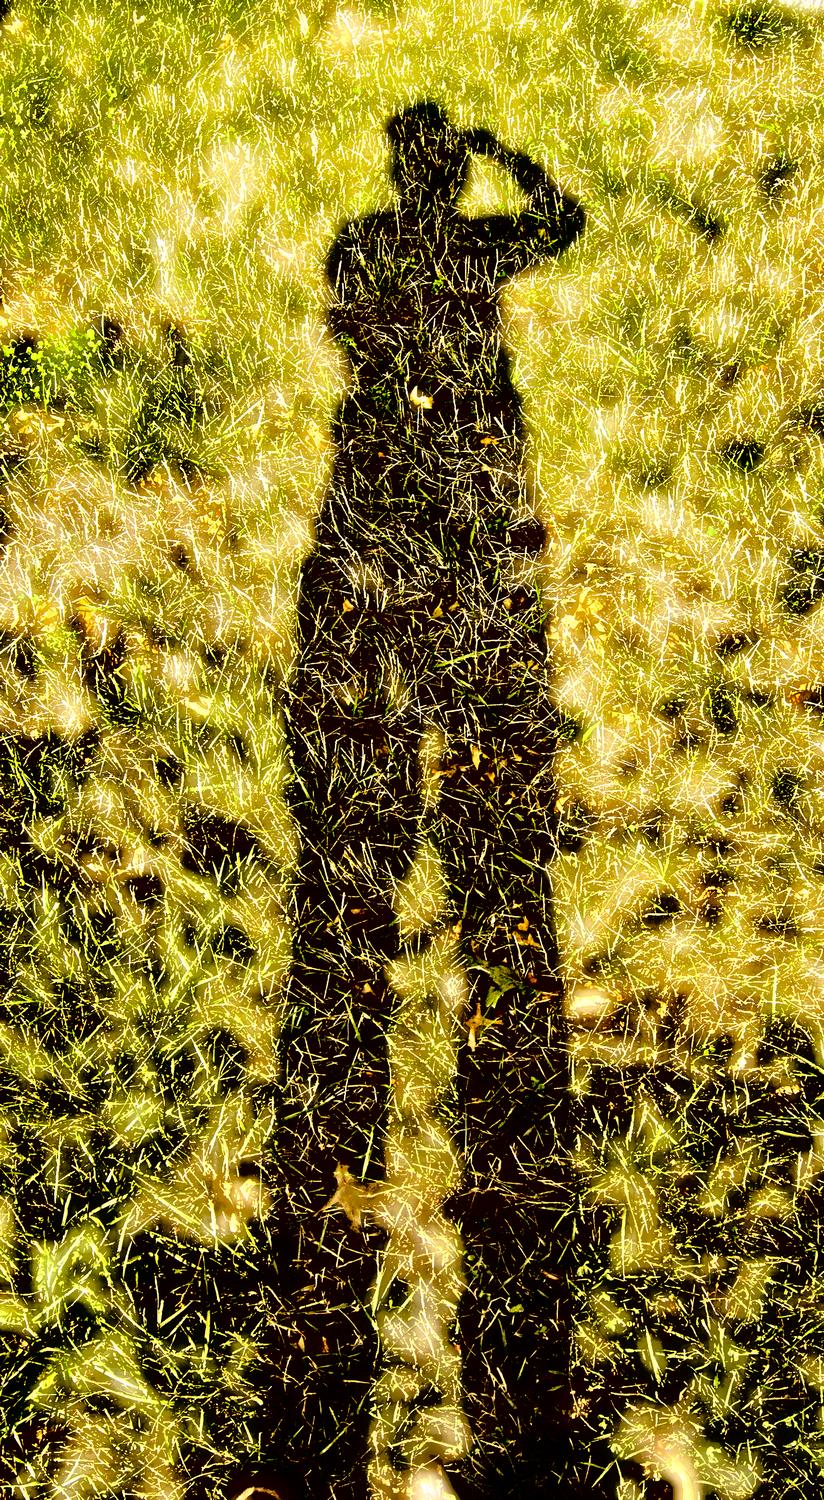 silhouette of the artist - Me on grass - Kodak Easyshare P880 - - art  - photography - by Tony Karp